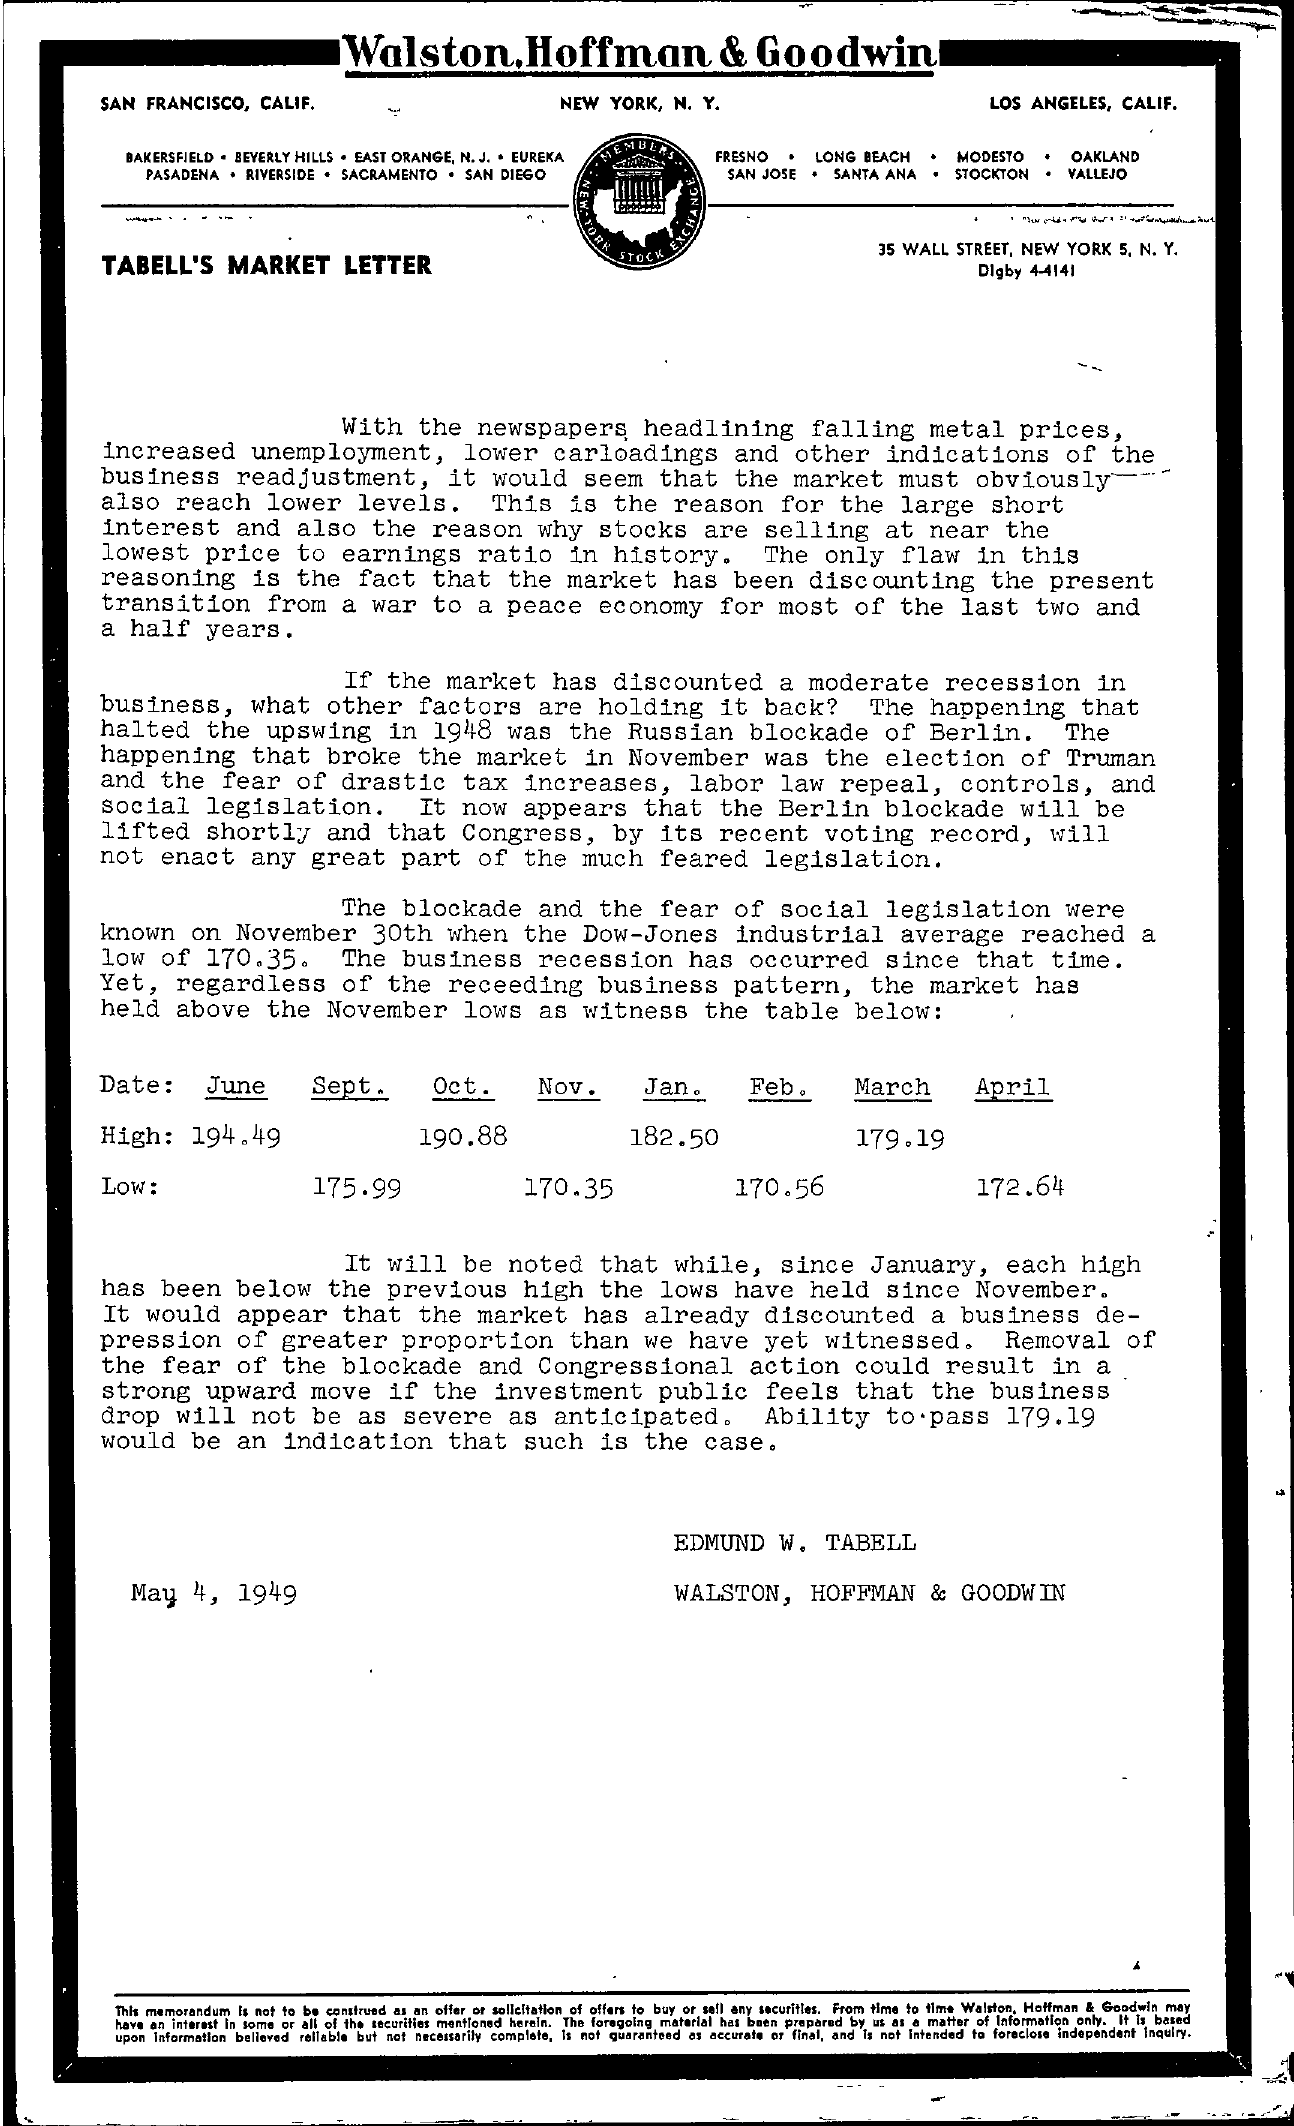 Tabell's Market Letter - May 04, 1949